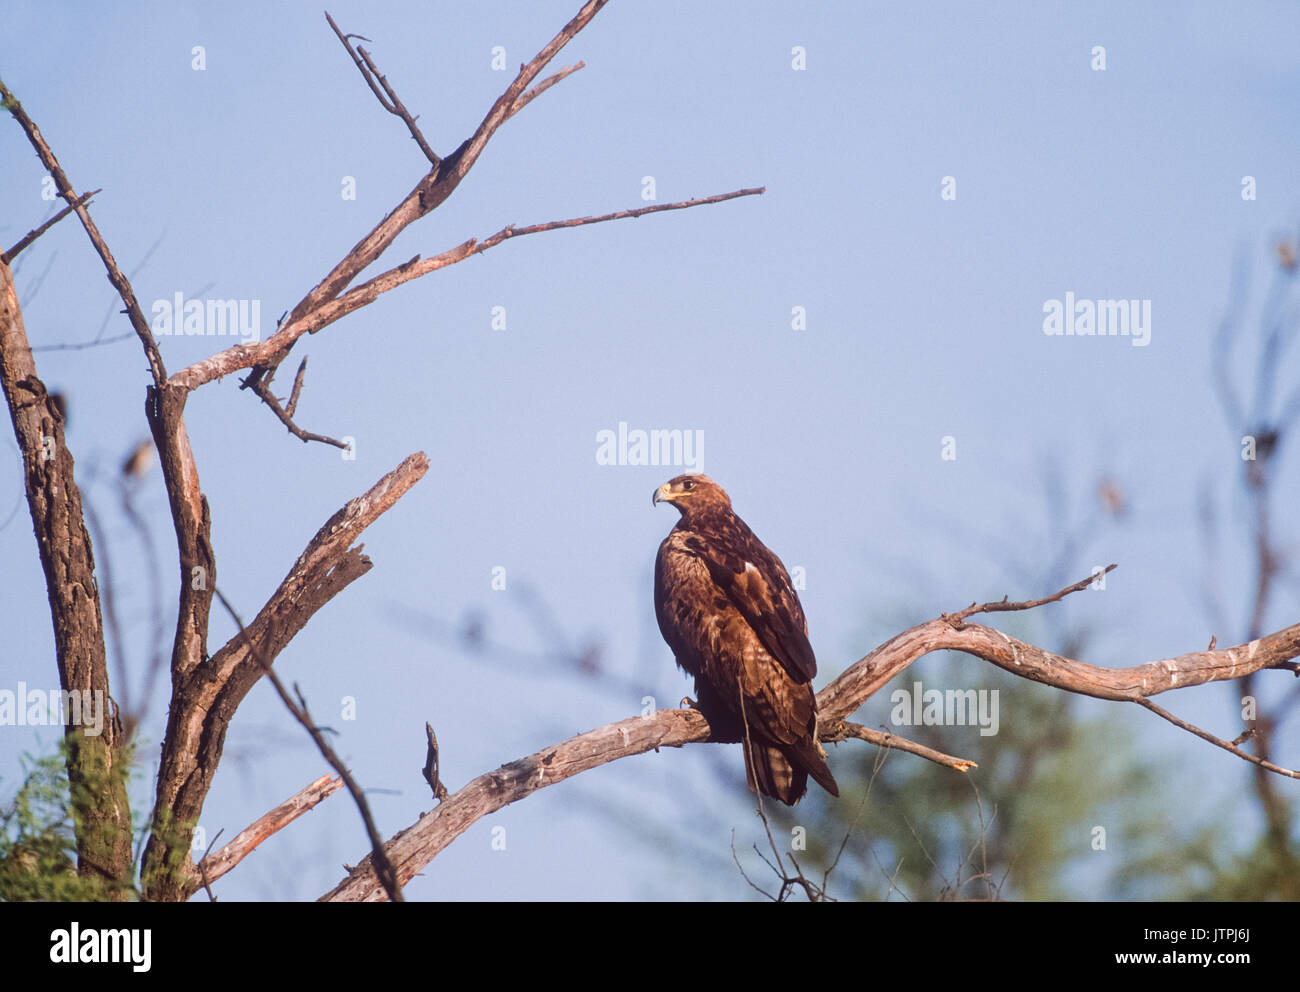 Steppe Eagle,(Aquila nipalensis), perched in tree, Keoladeo Ghana National Park, Bharatpur, Rajasthan, India - Stock Image